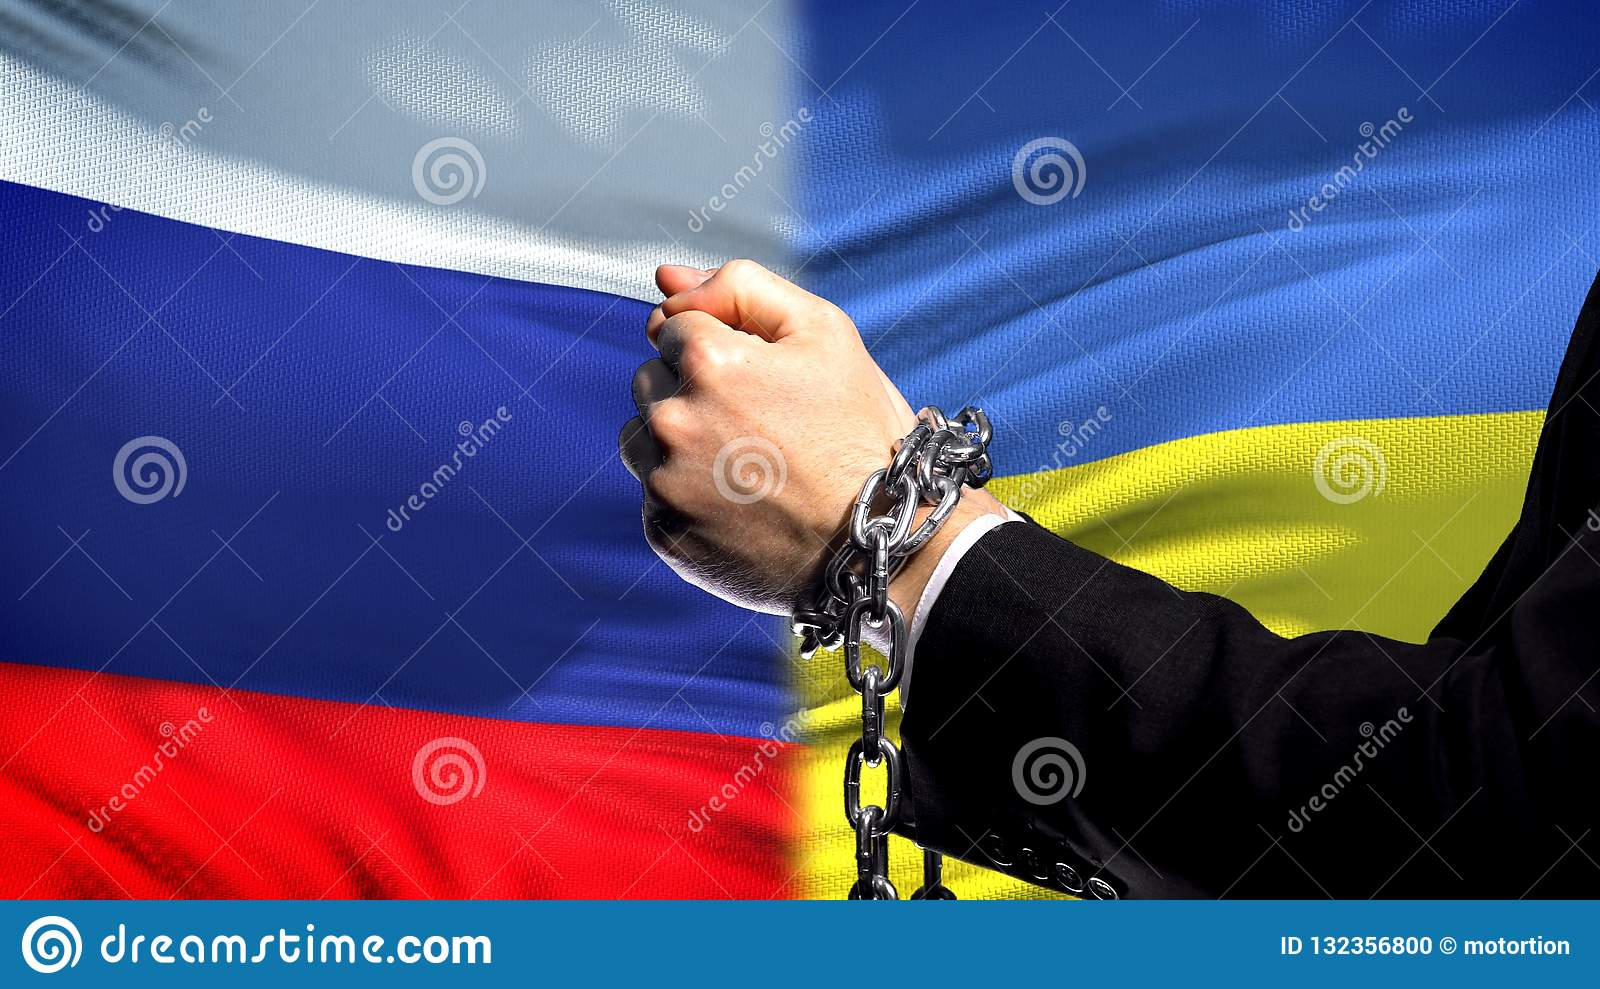 Russia sanctions Ukraine, chained arms, political or economic conflict, business